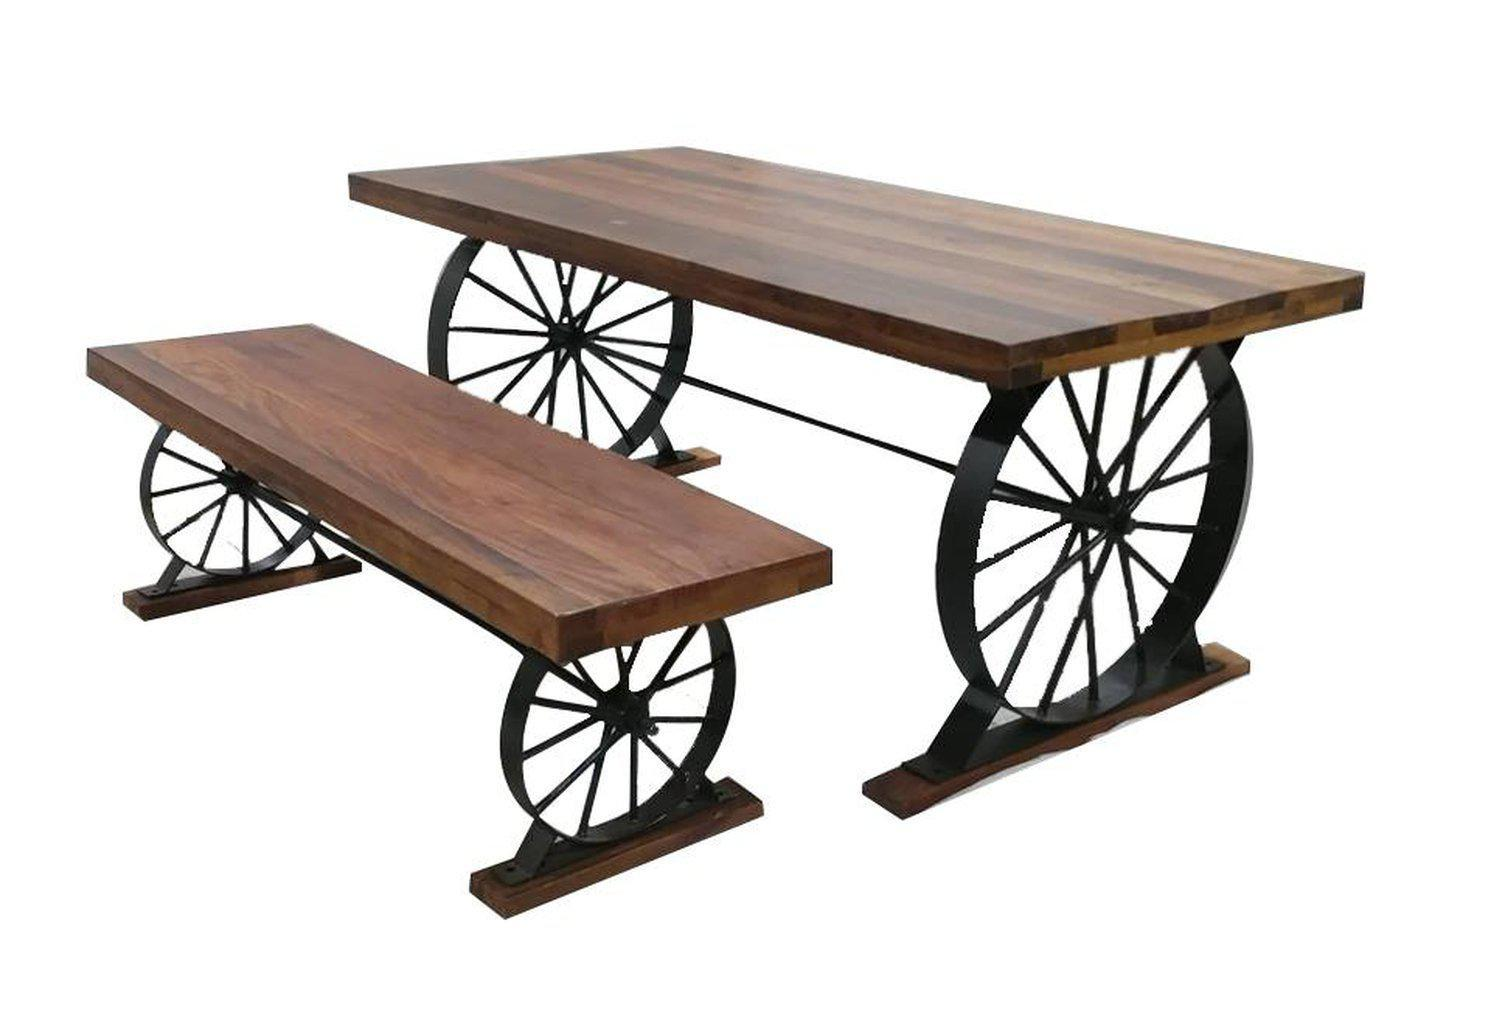 Stupendous Wagon Wheel Table And Bench Set Solid Hardwood Iron Base Unemploymentrelief Wooden Chair Designs For Living Room Unemploymentrelieforg